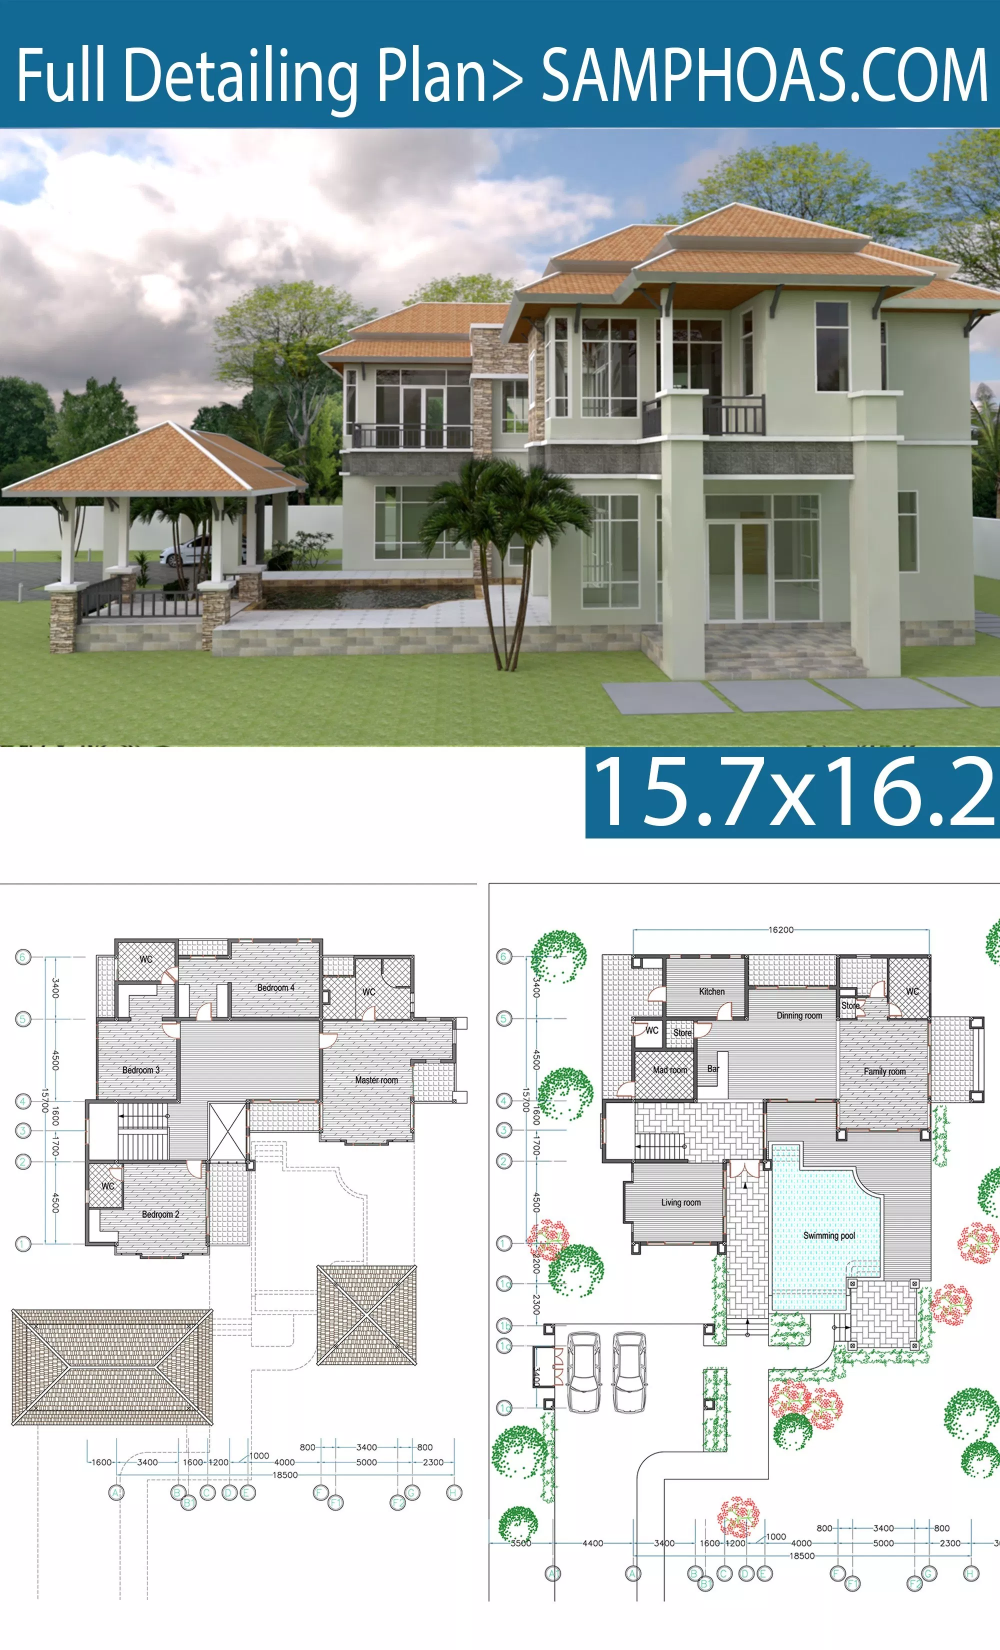 4 Bedroom House Size 15,7x16,2m 4 bedroom house, Free